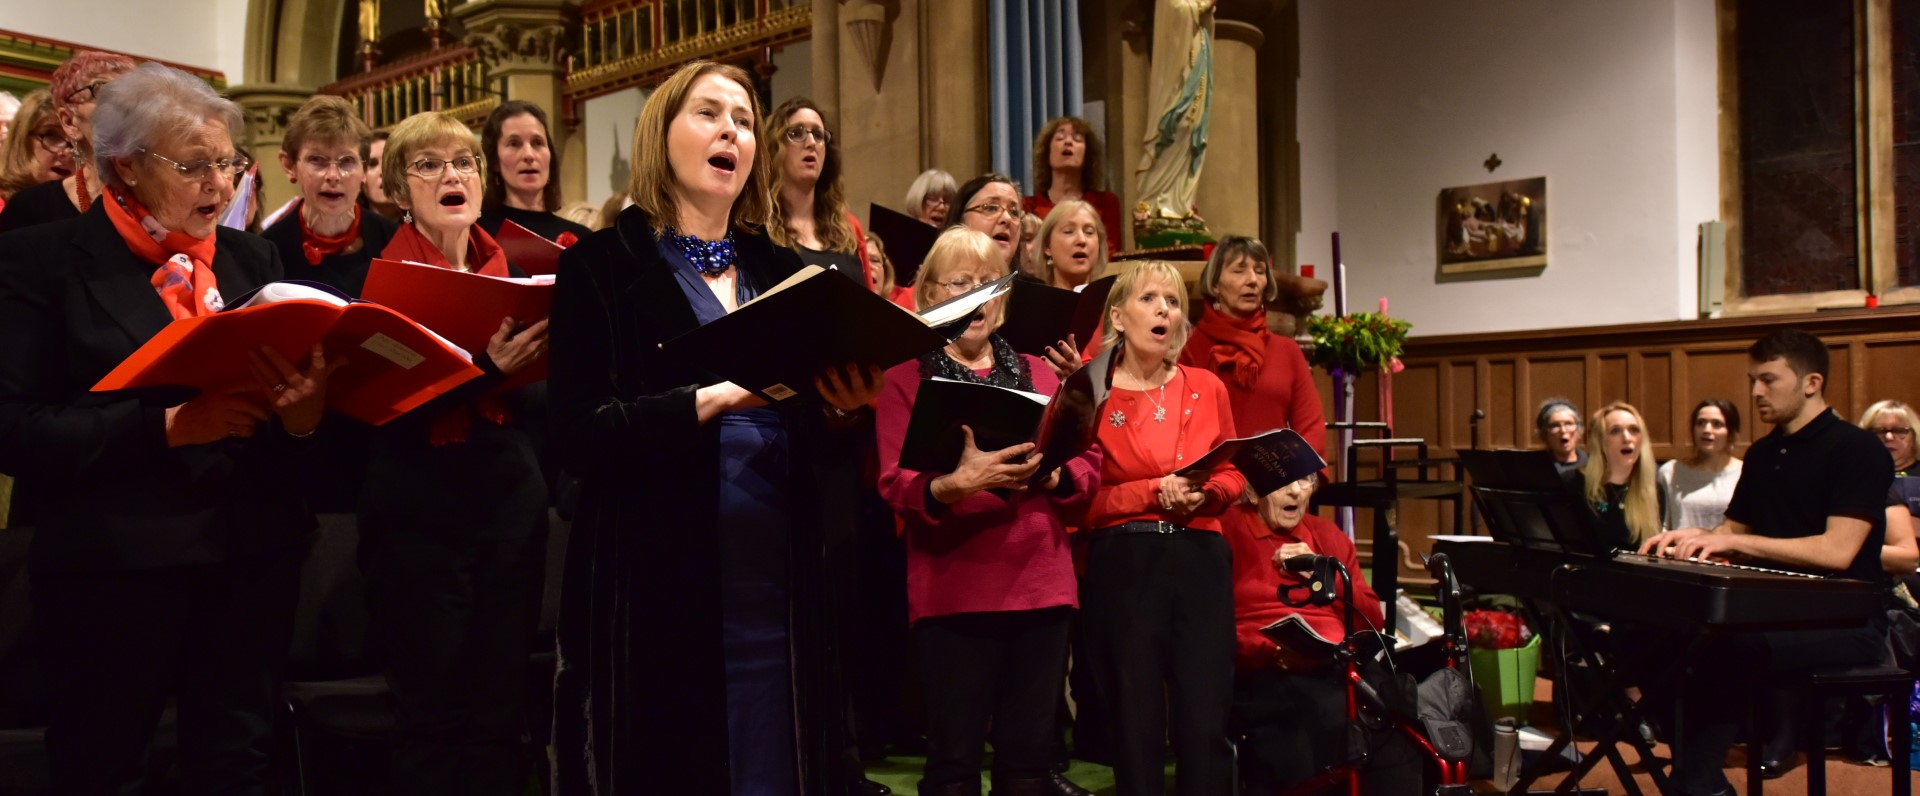 Niamh O'Hanlon, Jacob Stone and members of Viva! singing at the Combined Choirs Christmas Concert